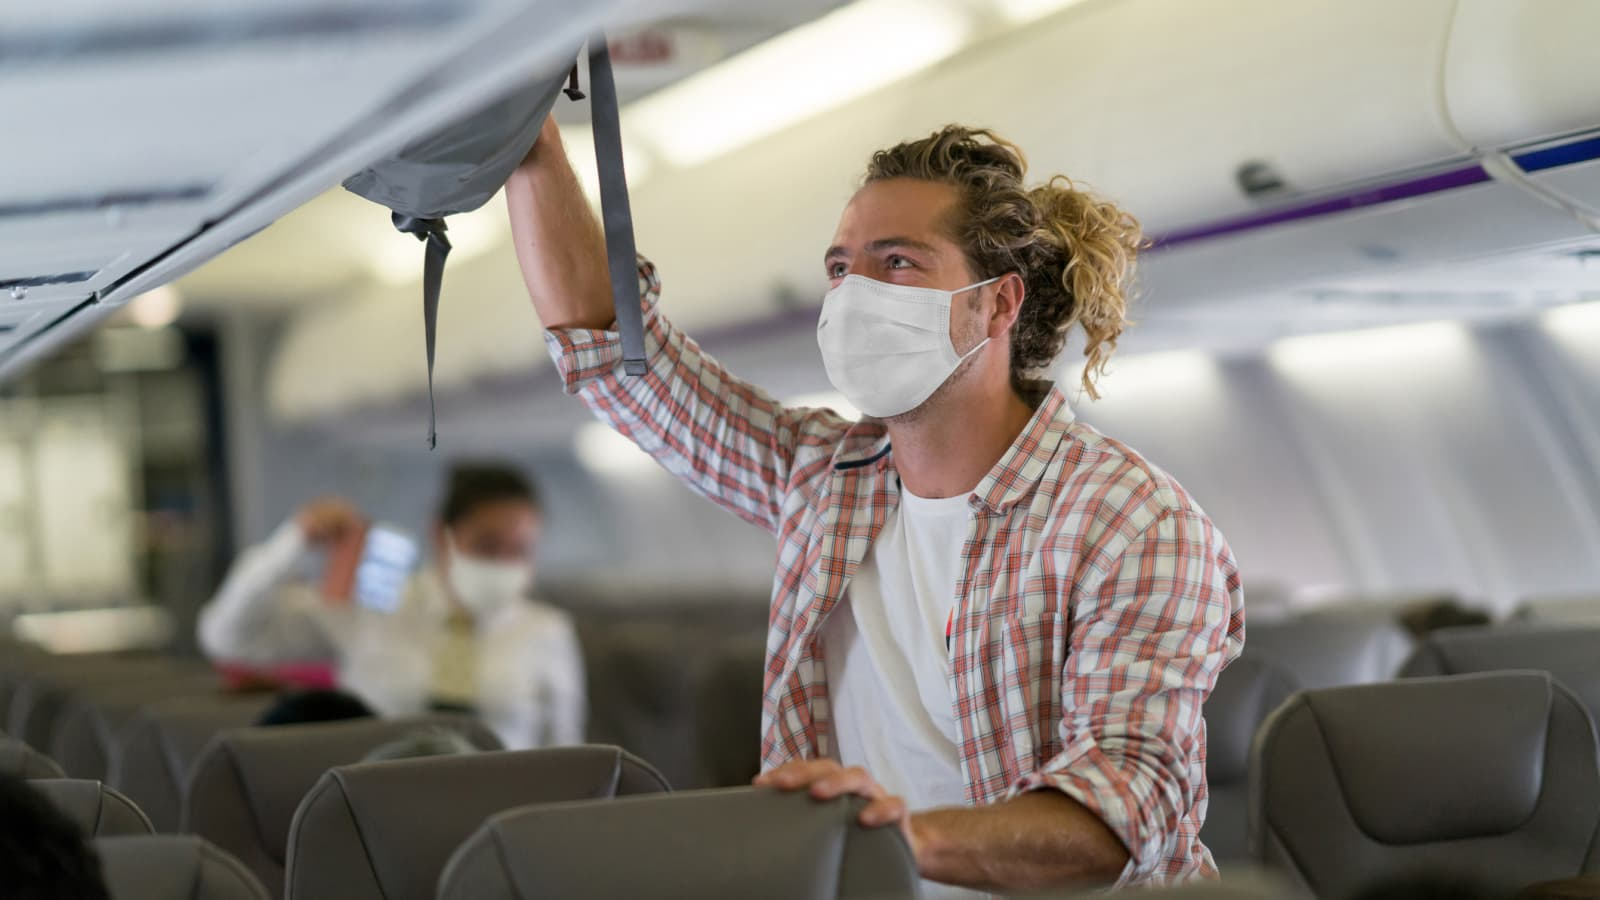 Coronavirus Airline Policies For Crowded Flights